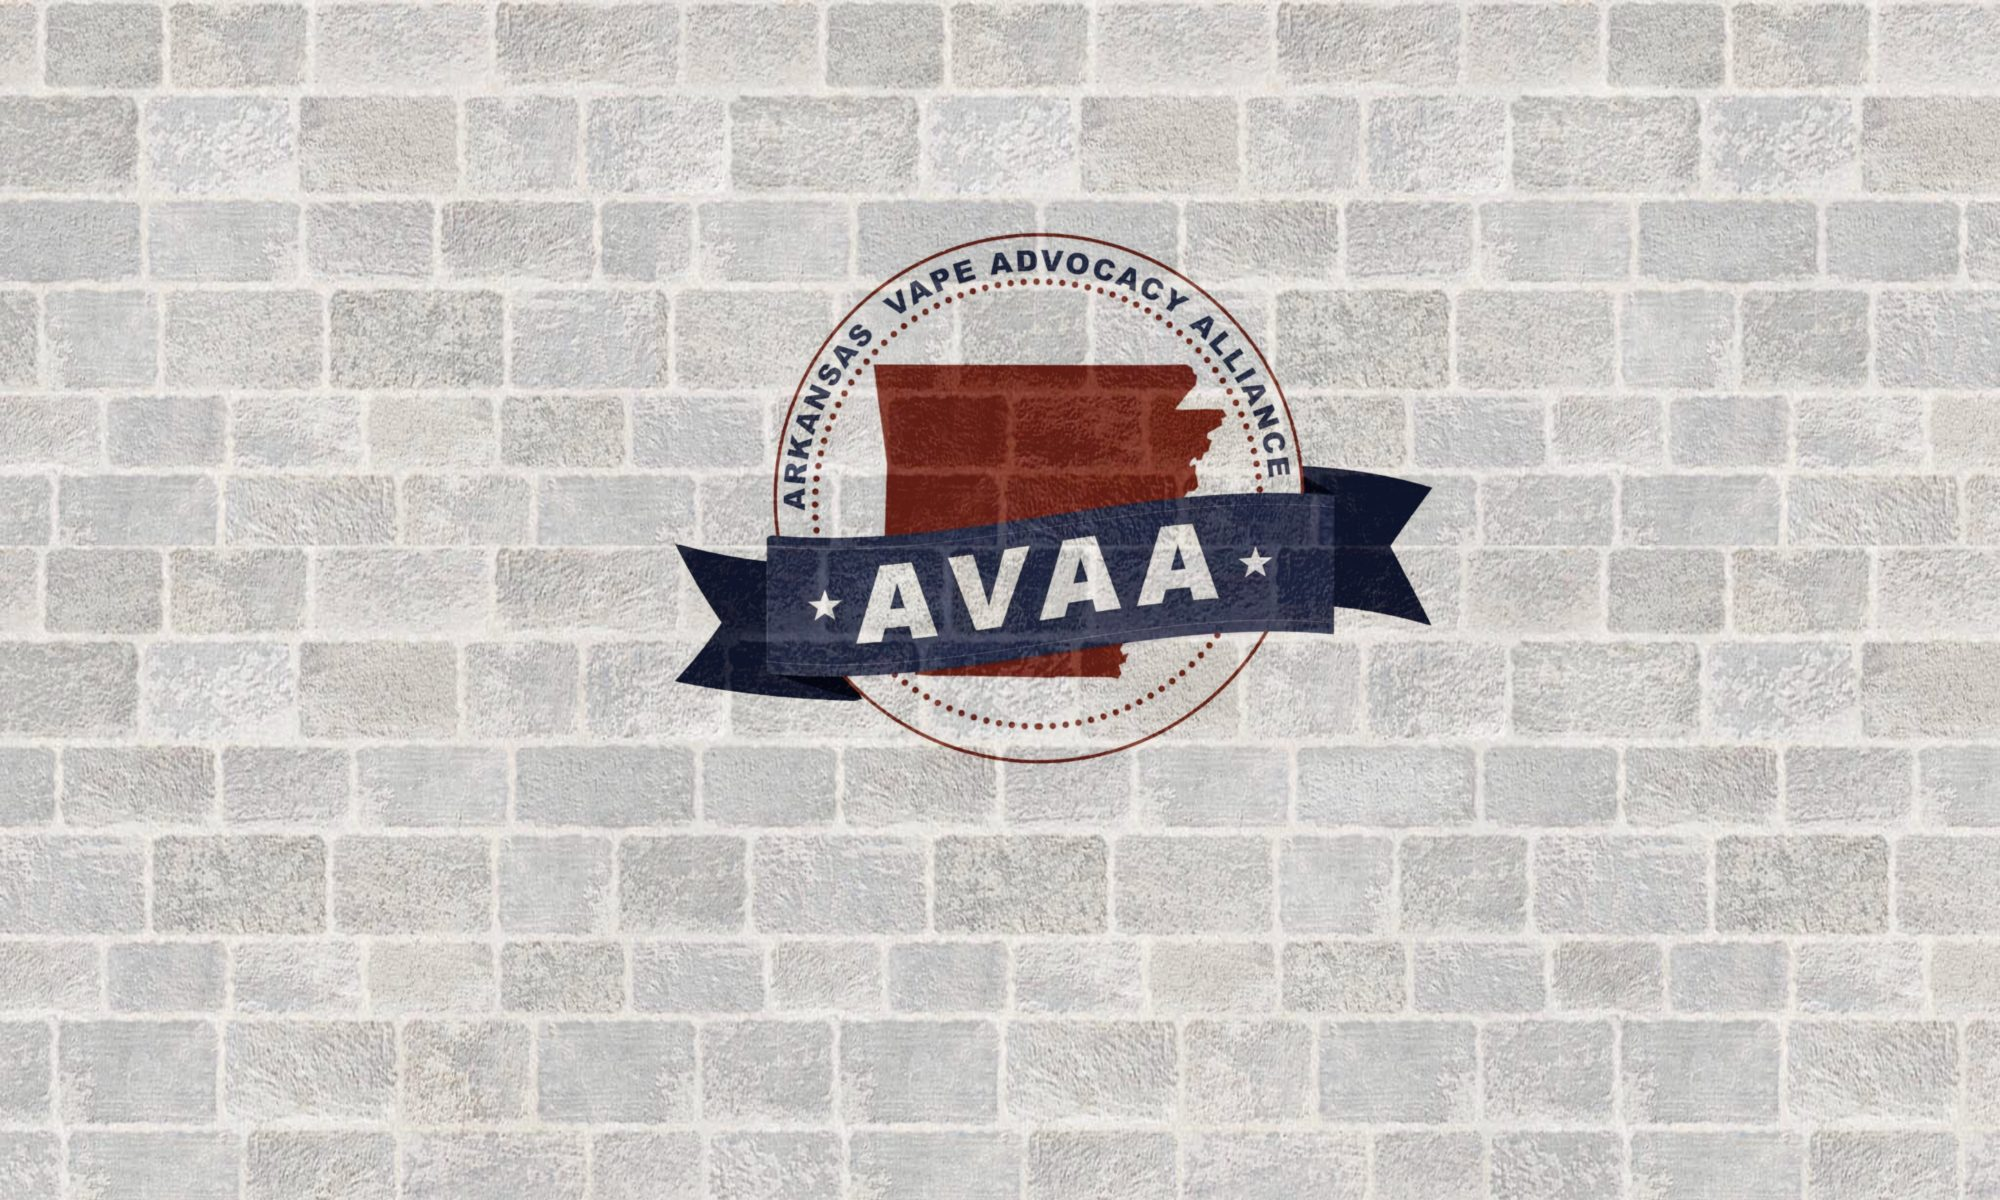 Arkansas Vape Advocacy Alliance